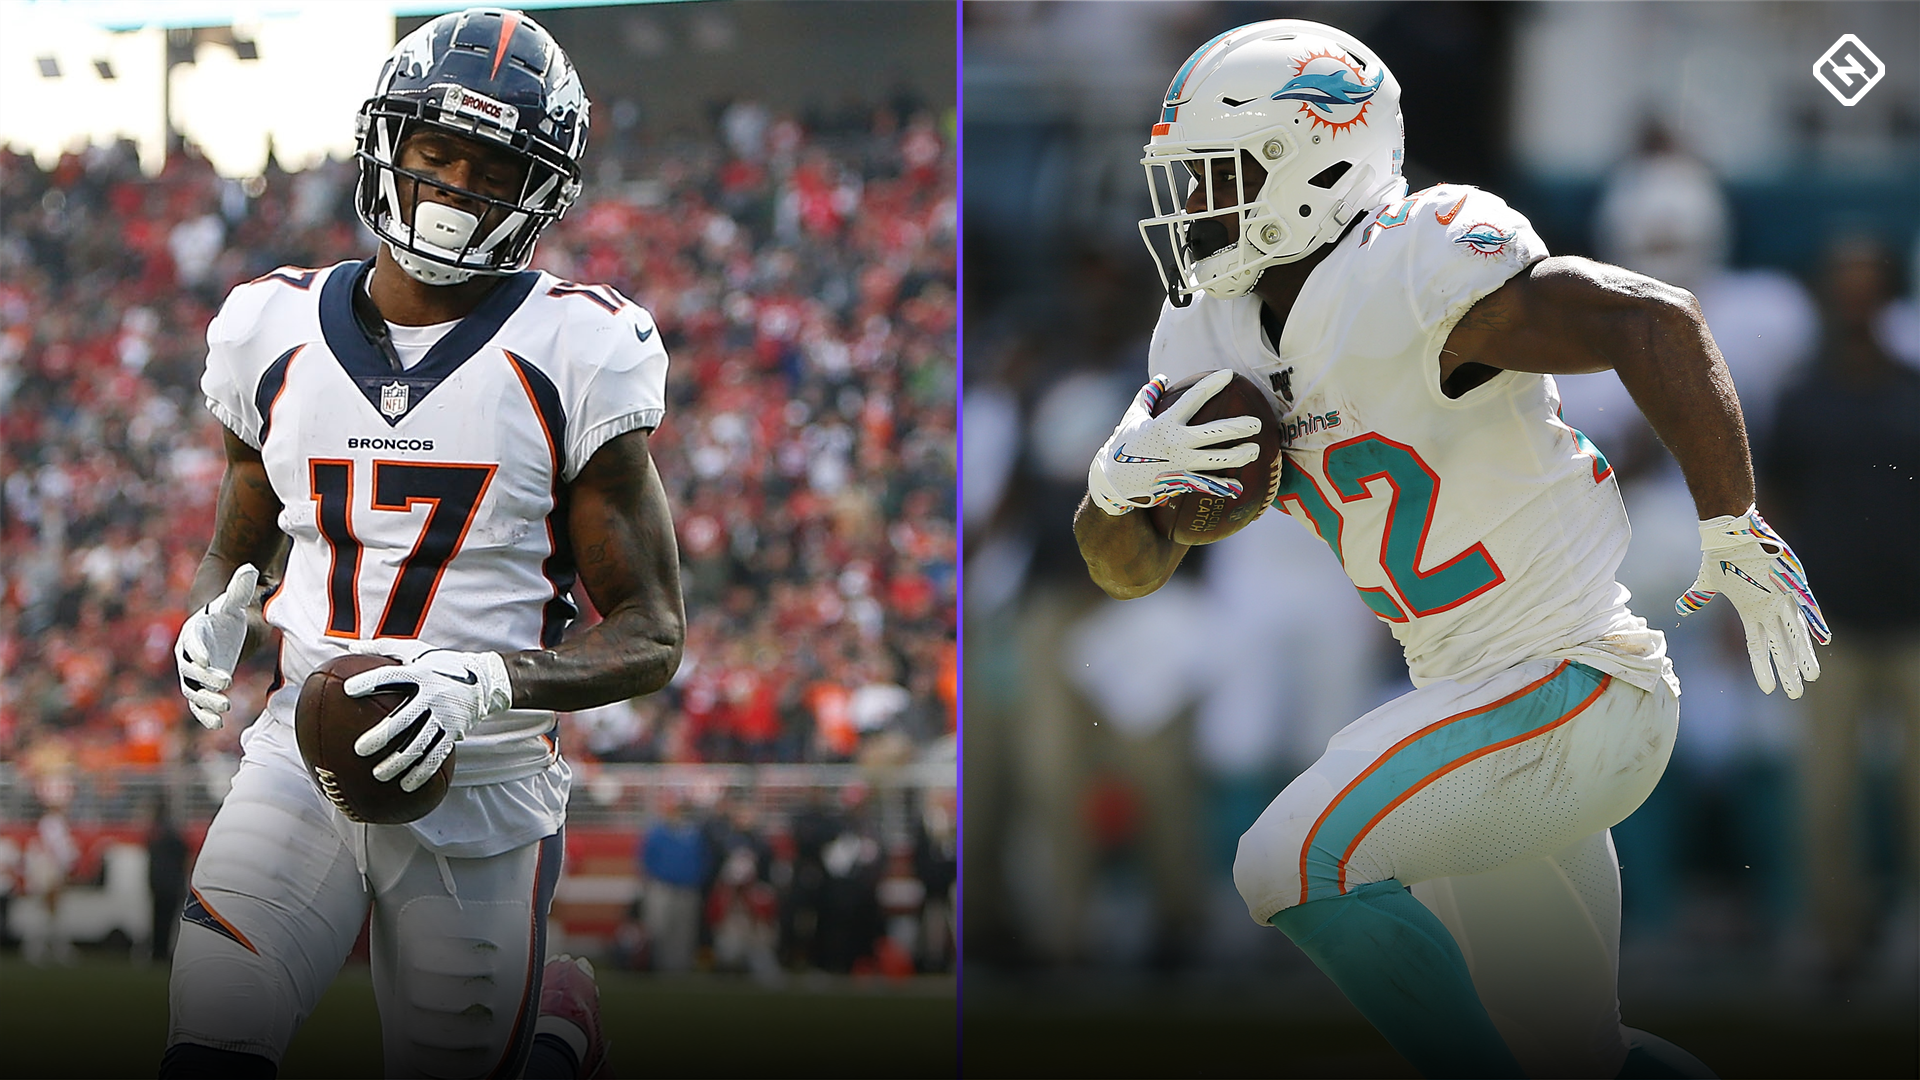 Fantasy Football Waiver Wire Watch List for Week 9